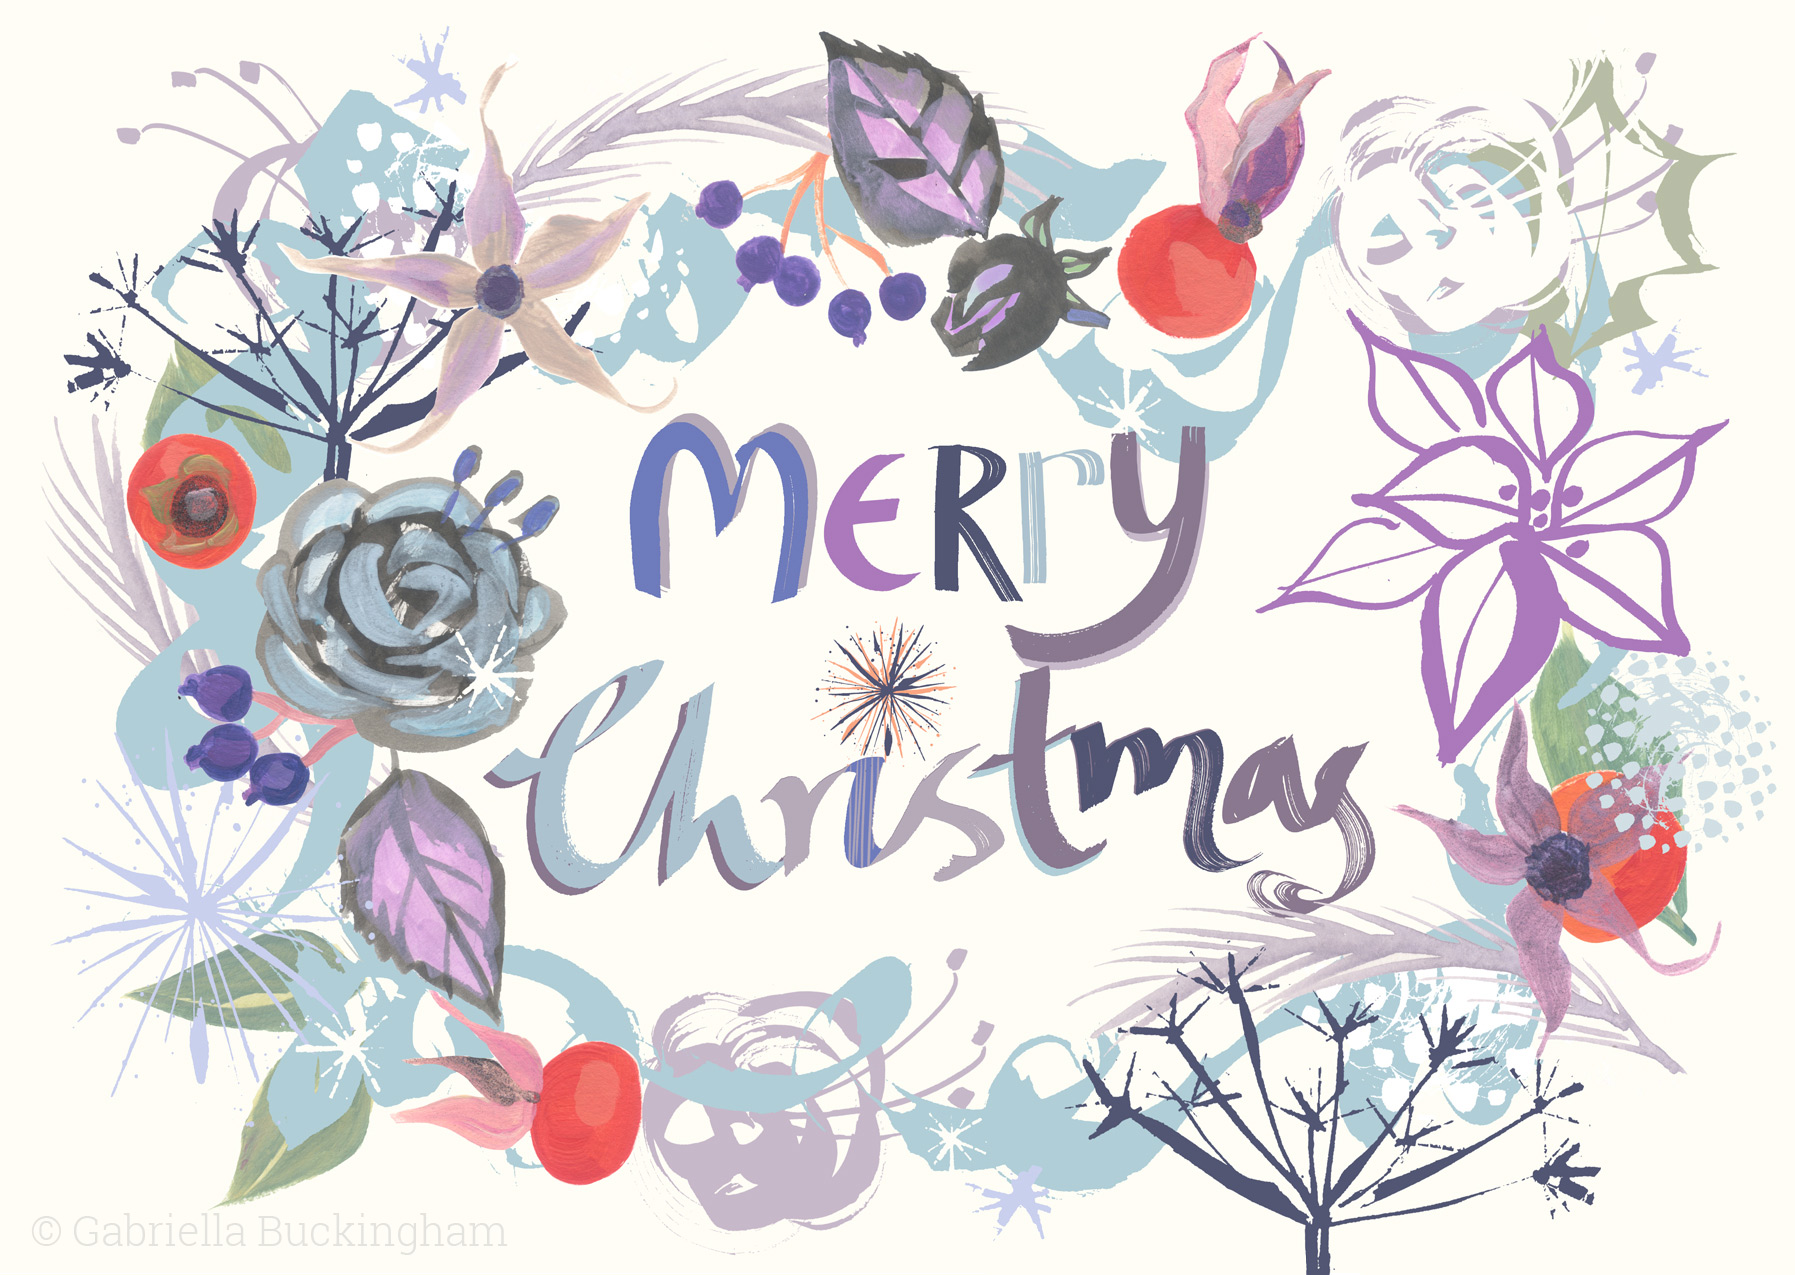 merry-christmas-lettering-and-foliage-greeting-card.jpg